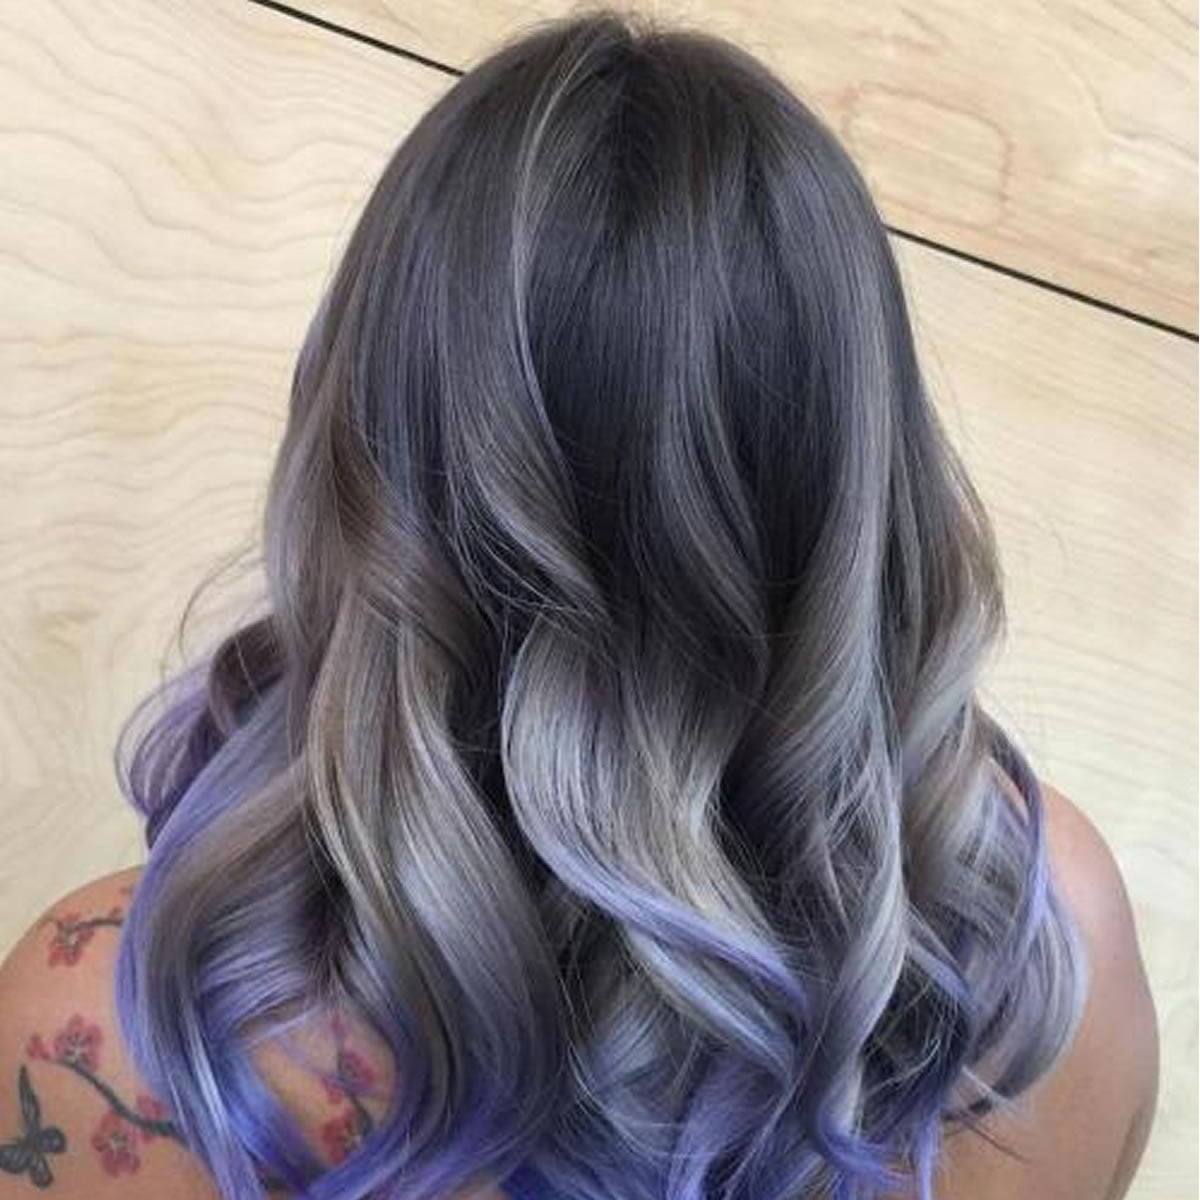 Grey Hair Trend 20 Glamorous Hairstyles For Women 2018